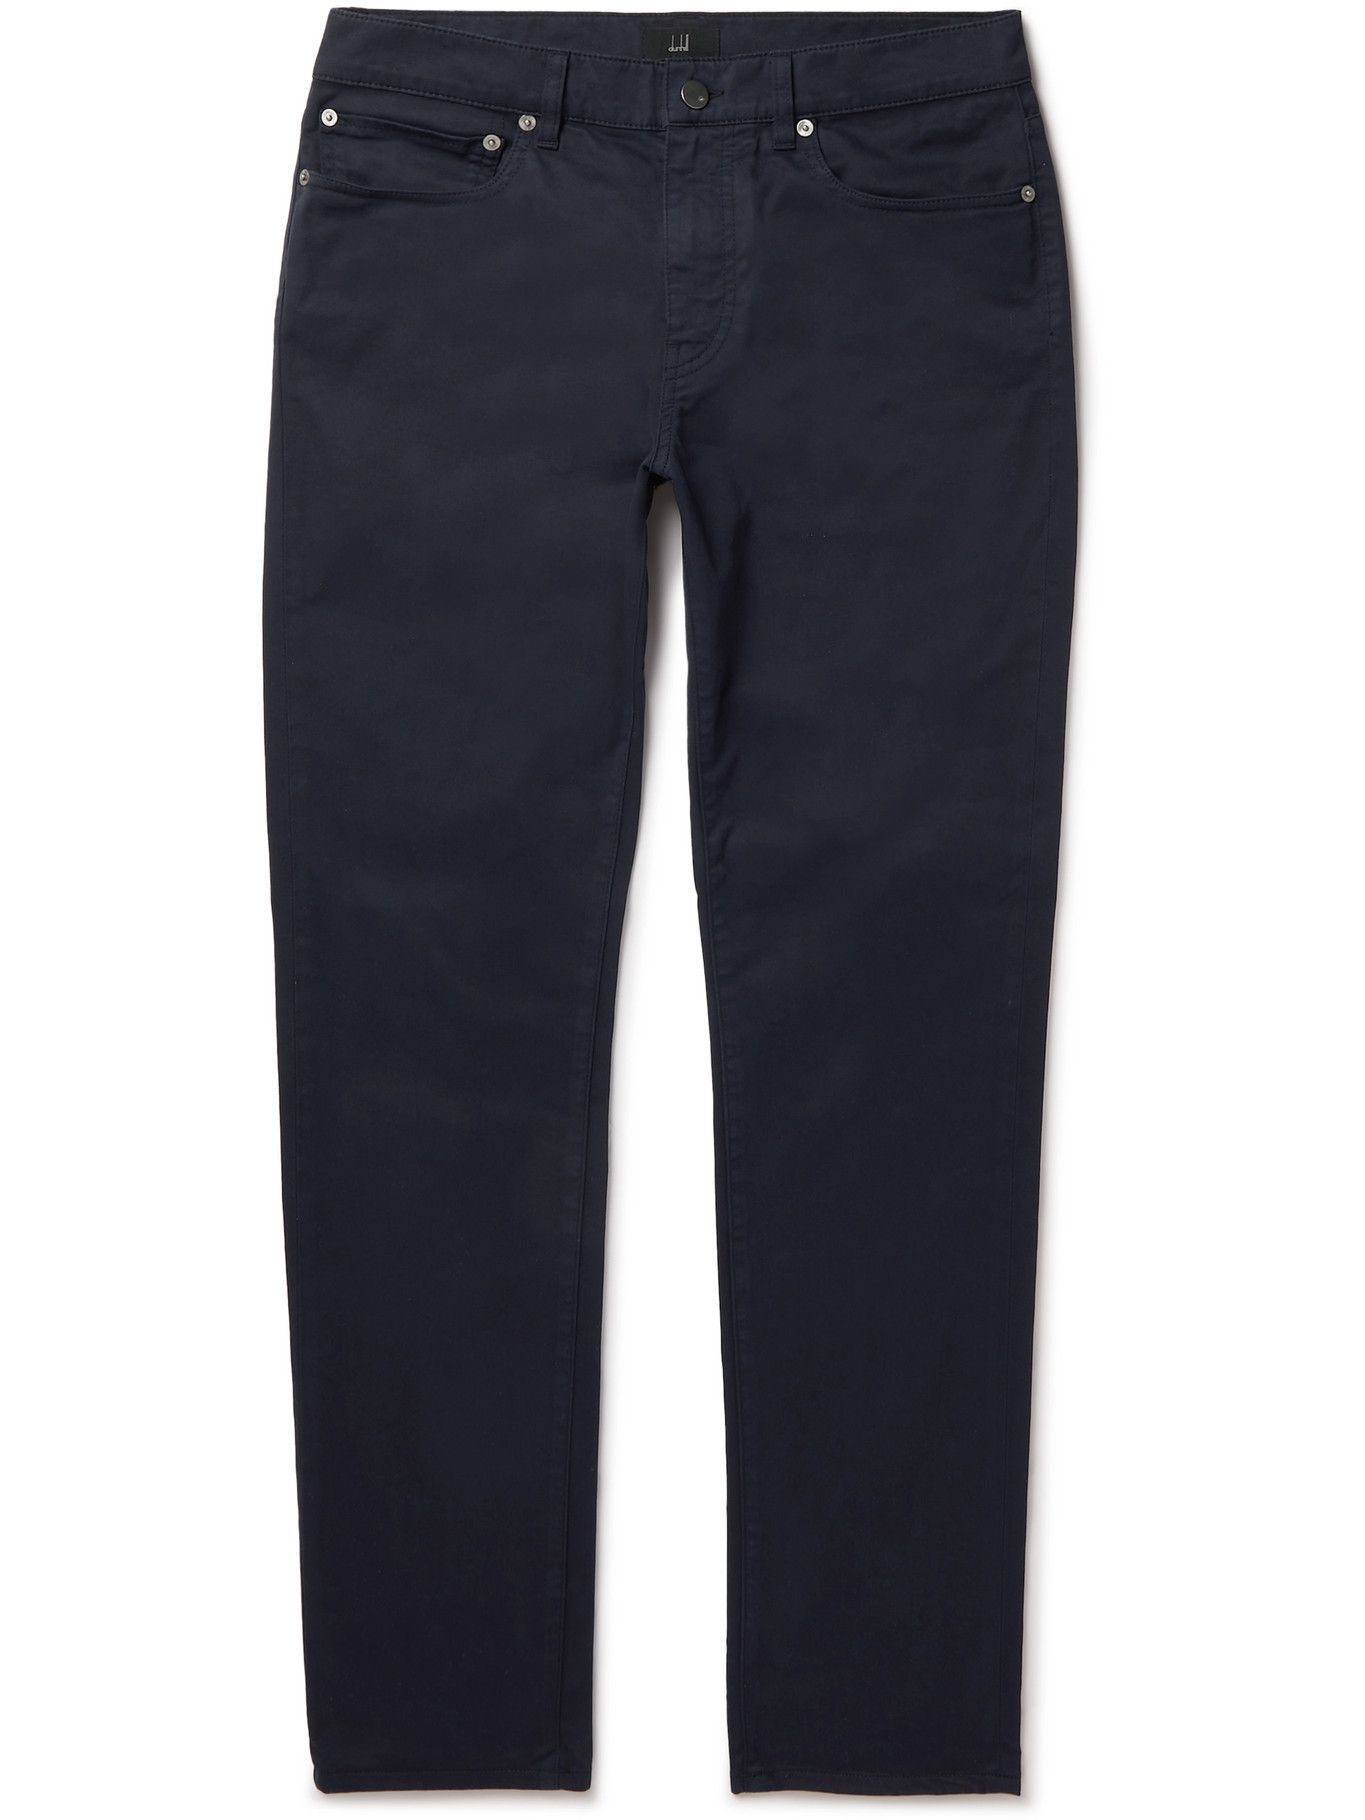 DUNHILL - Tapered Cotton-Blend Twill Trousers - Blue